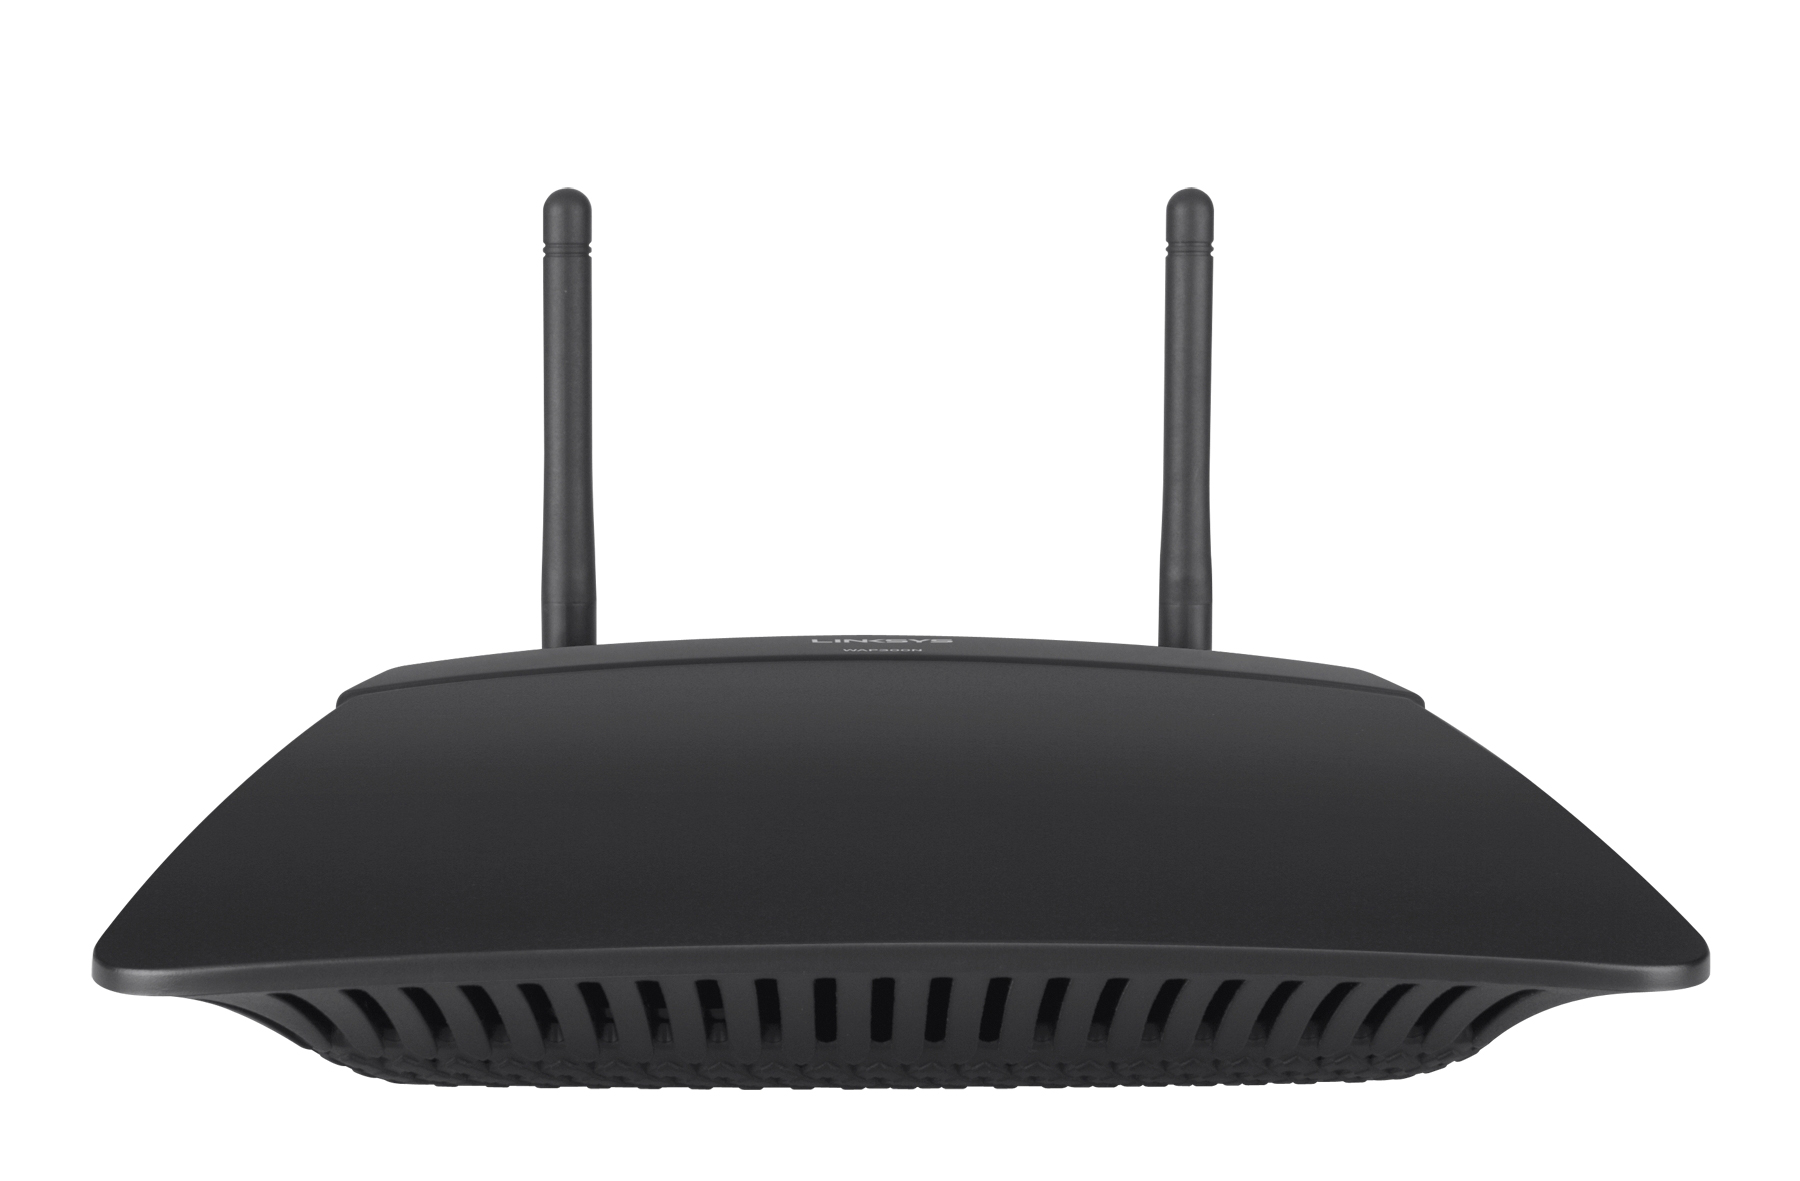 Linksys WAP300N N300 Dual Band Wireless Access Point, 2.4GHz/5GHz, abn. Antennen